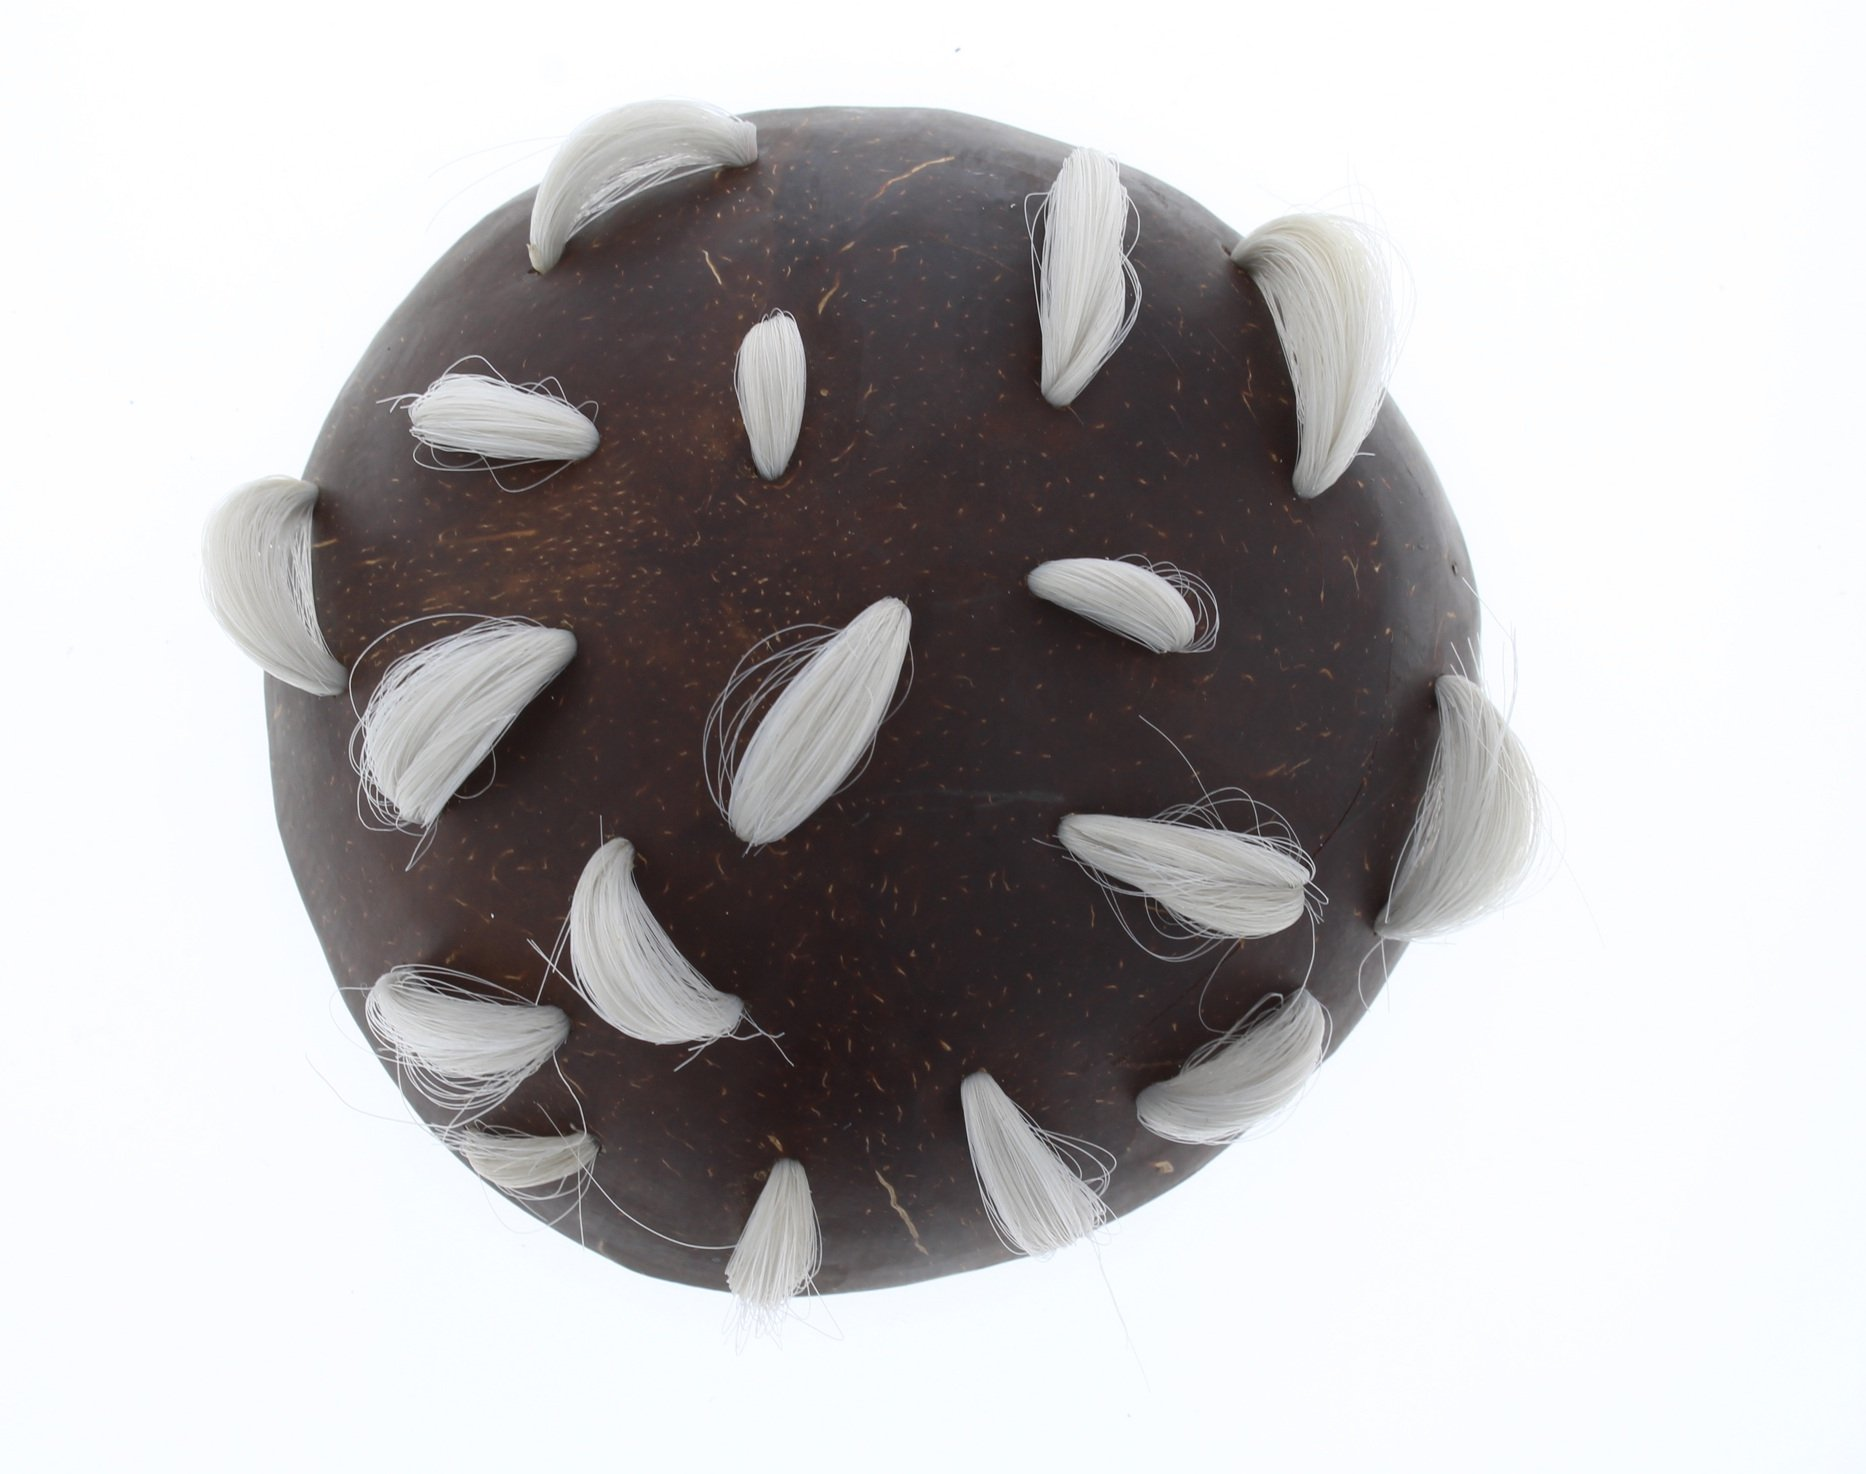 A circular brooch made from half a coconut shell, photographed from above. On the surface, white hair has been woven so it loops at intervals out of the shell.